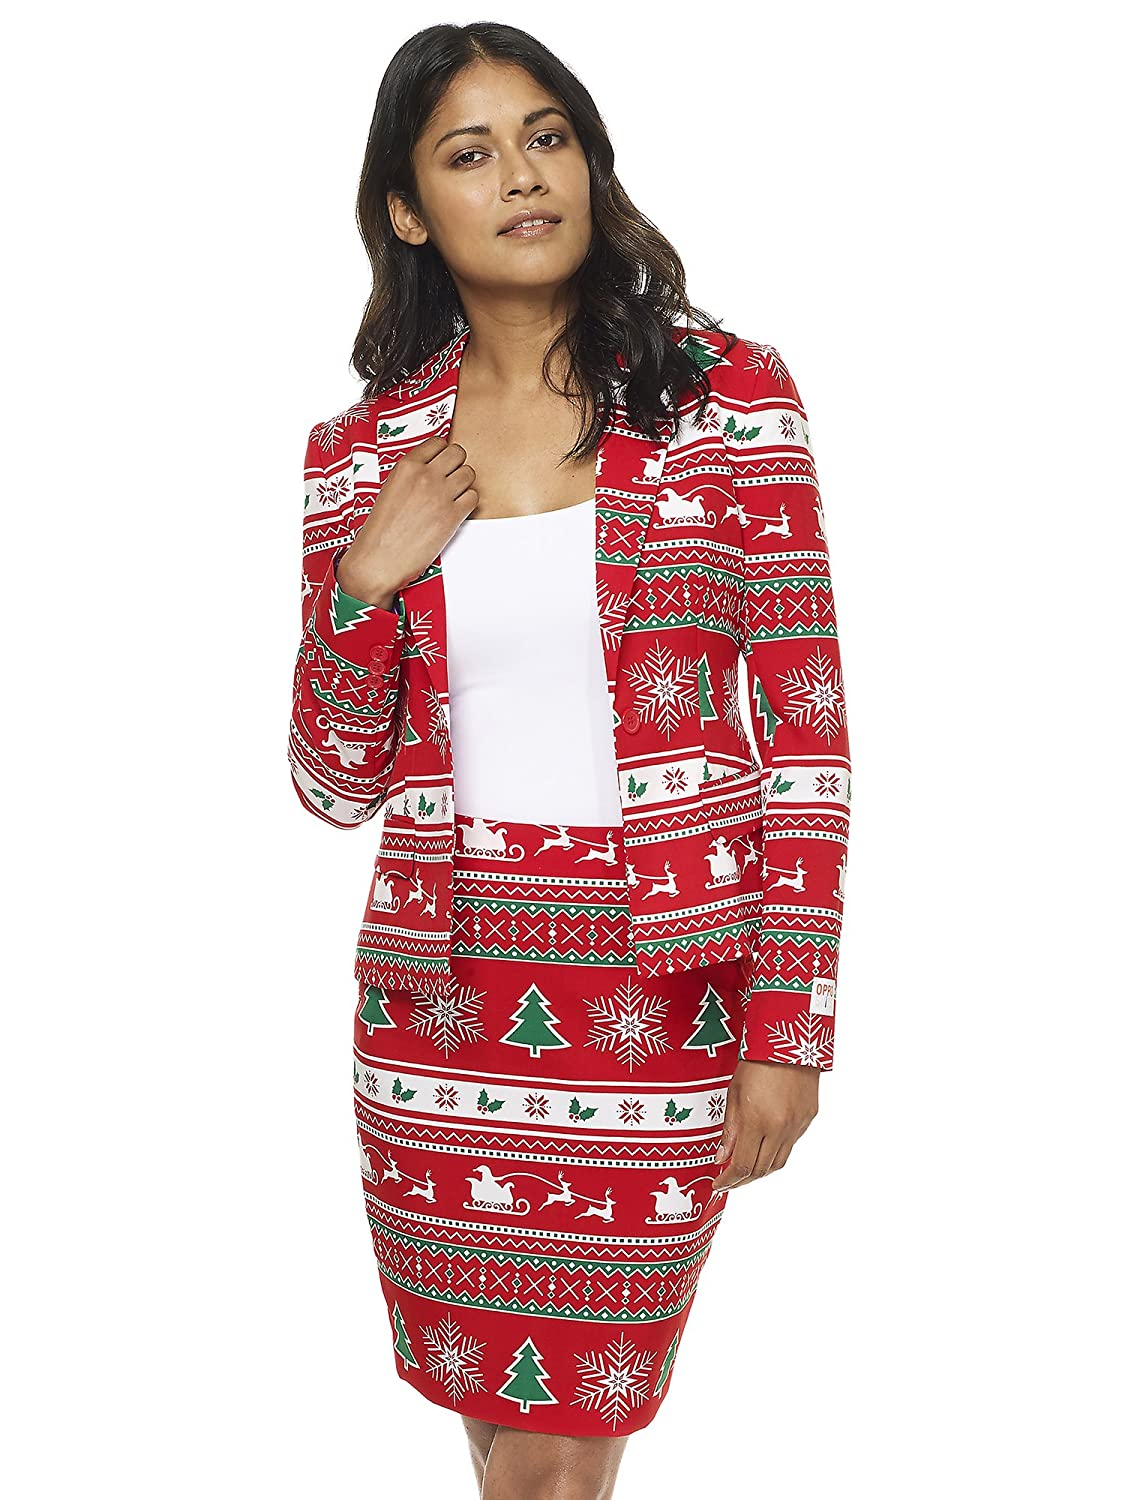 ad55fc885b OH DEER  Miss Rudolph from OppoSuits will instantly get you in the merry  holiday mood. Designed with the classy colors blue and red and a fun  reindeer ...